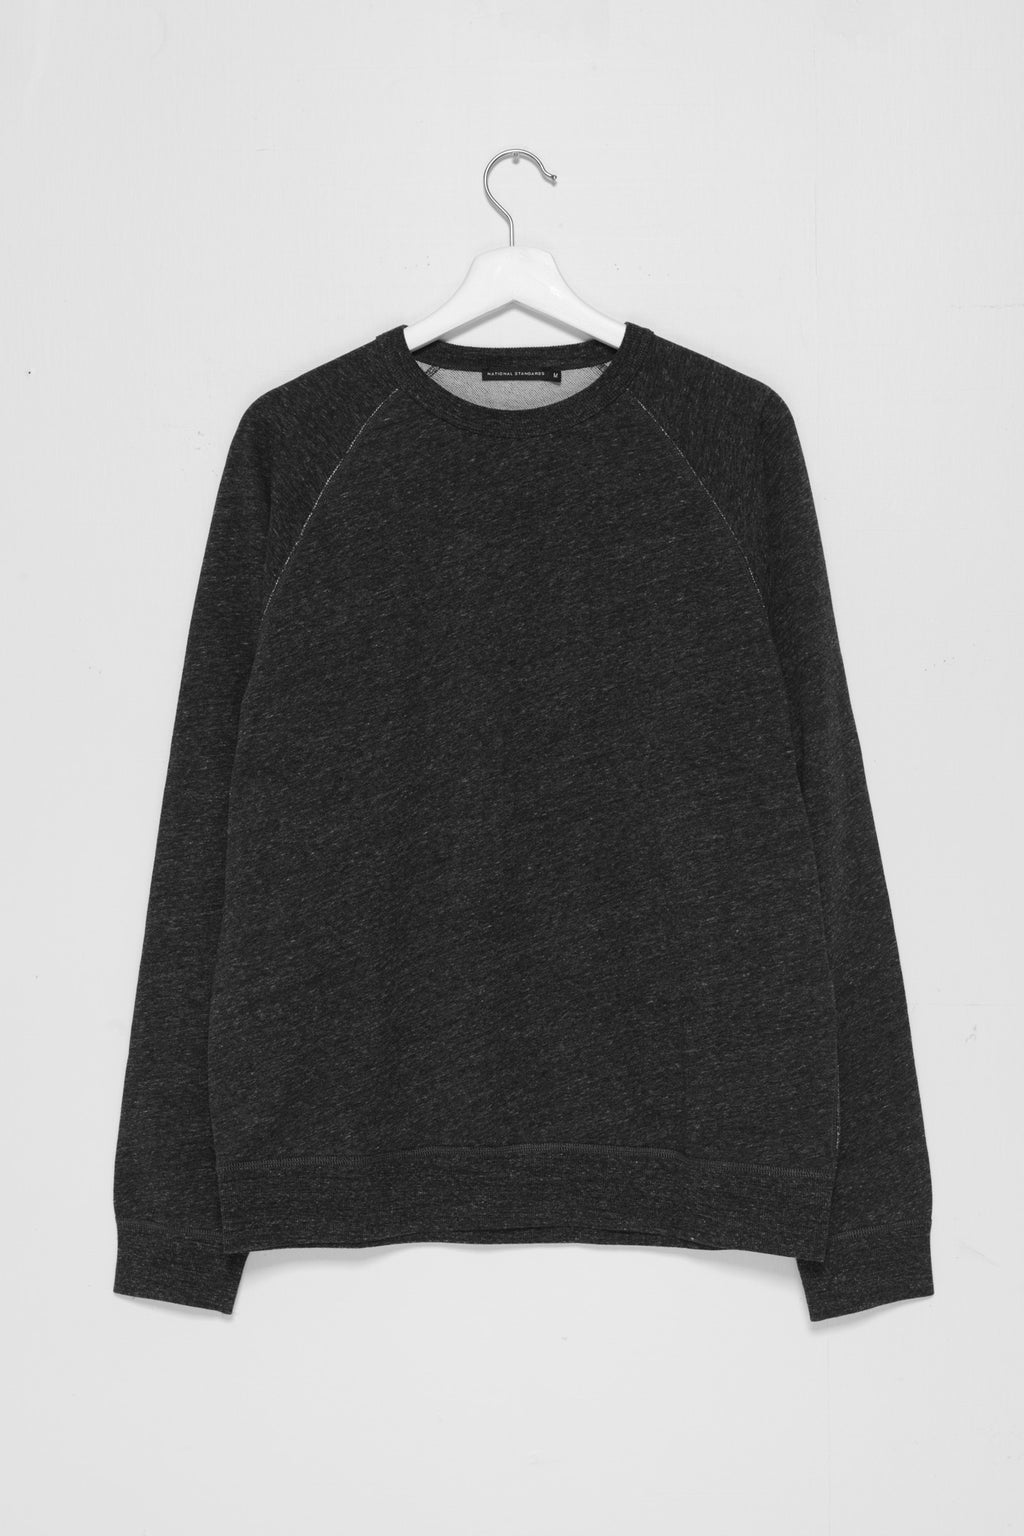 250gm French Terry Raglan in Melange Black